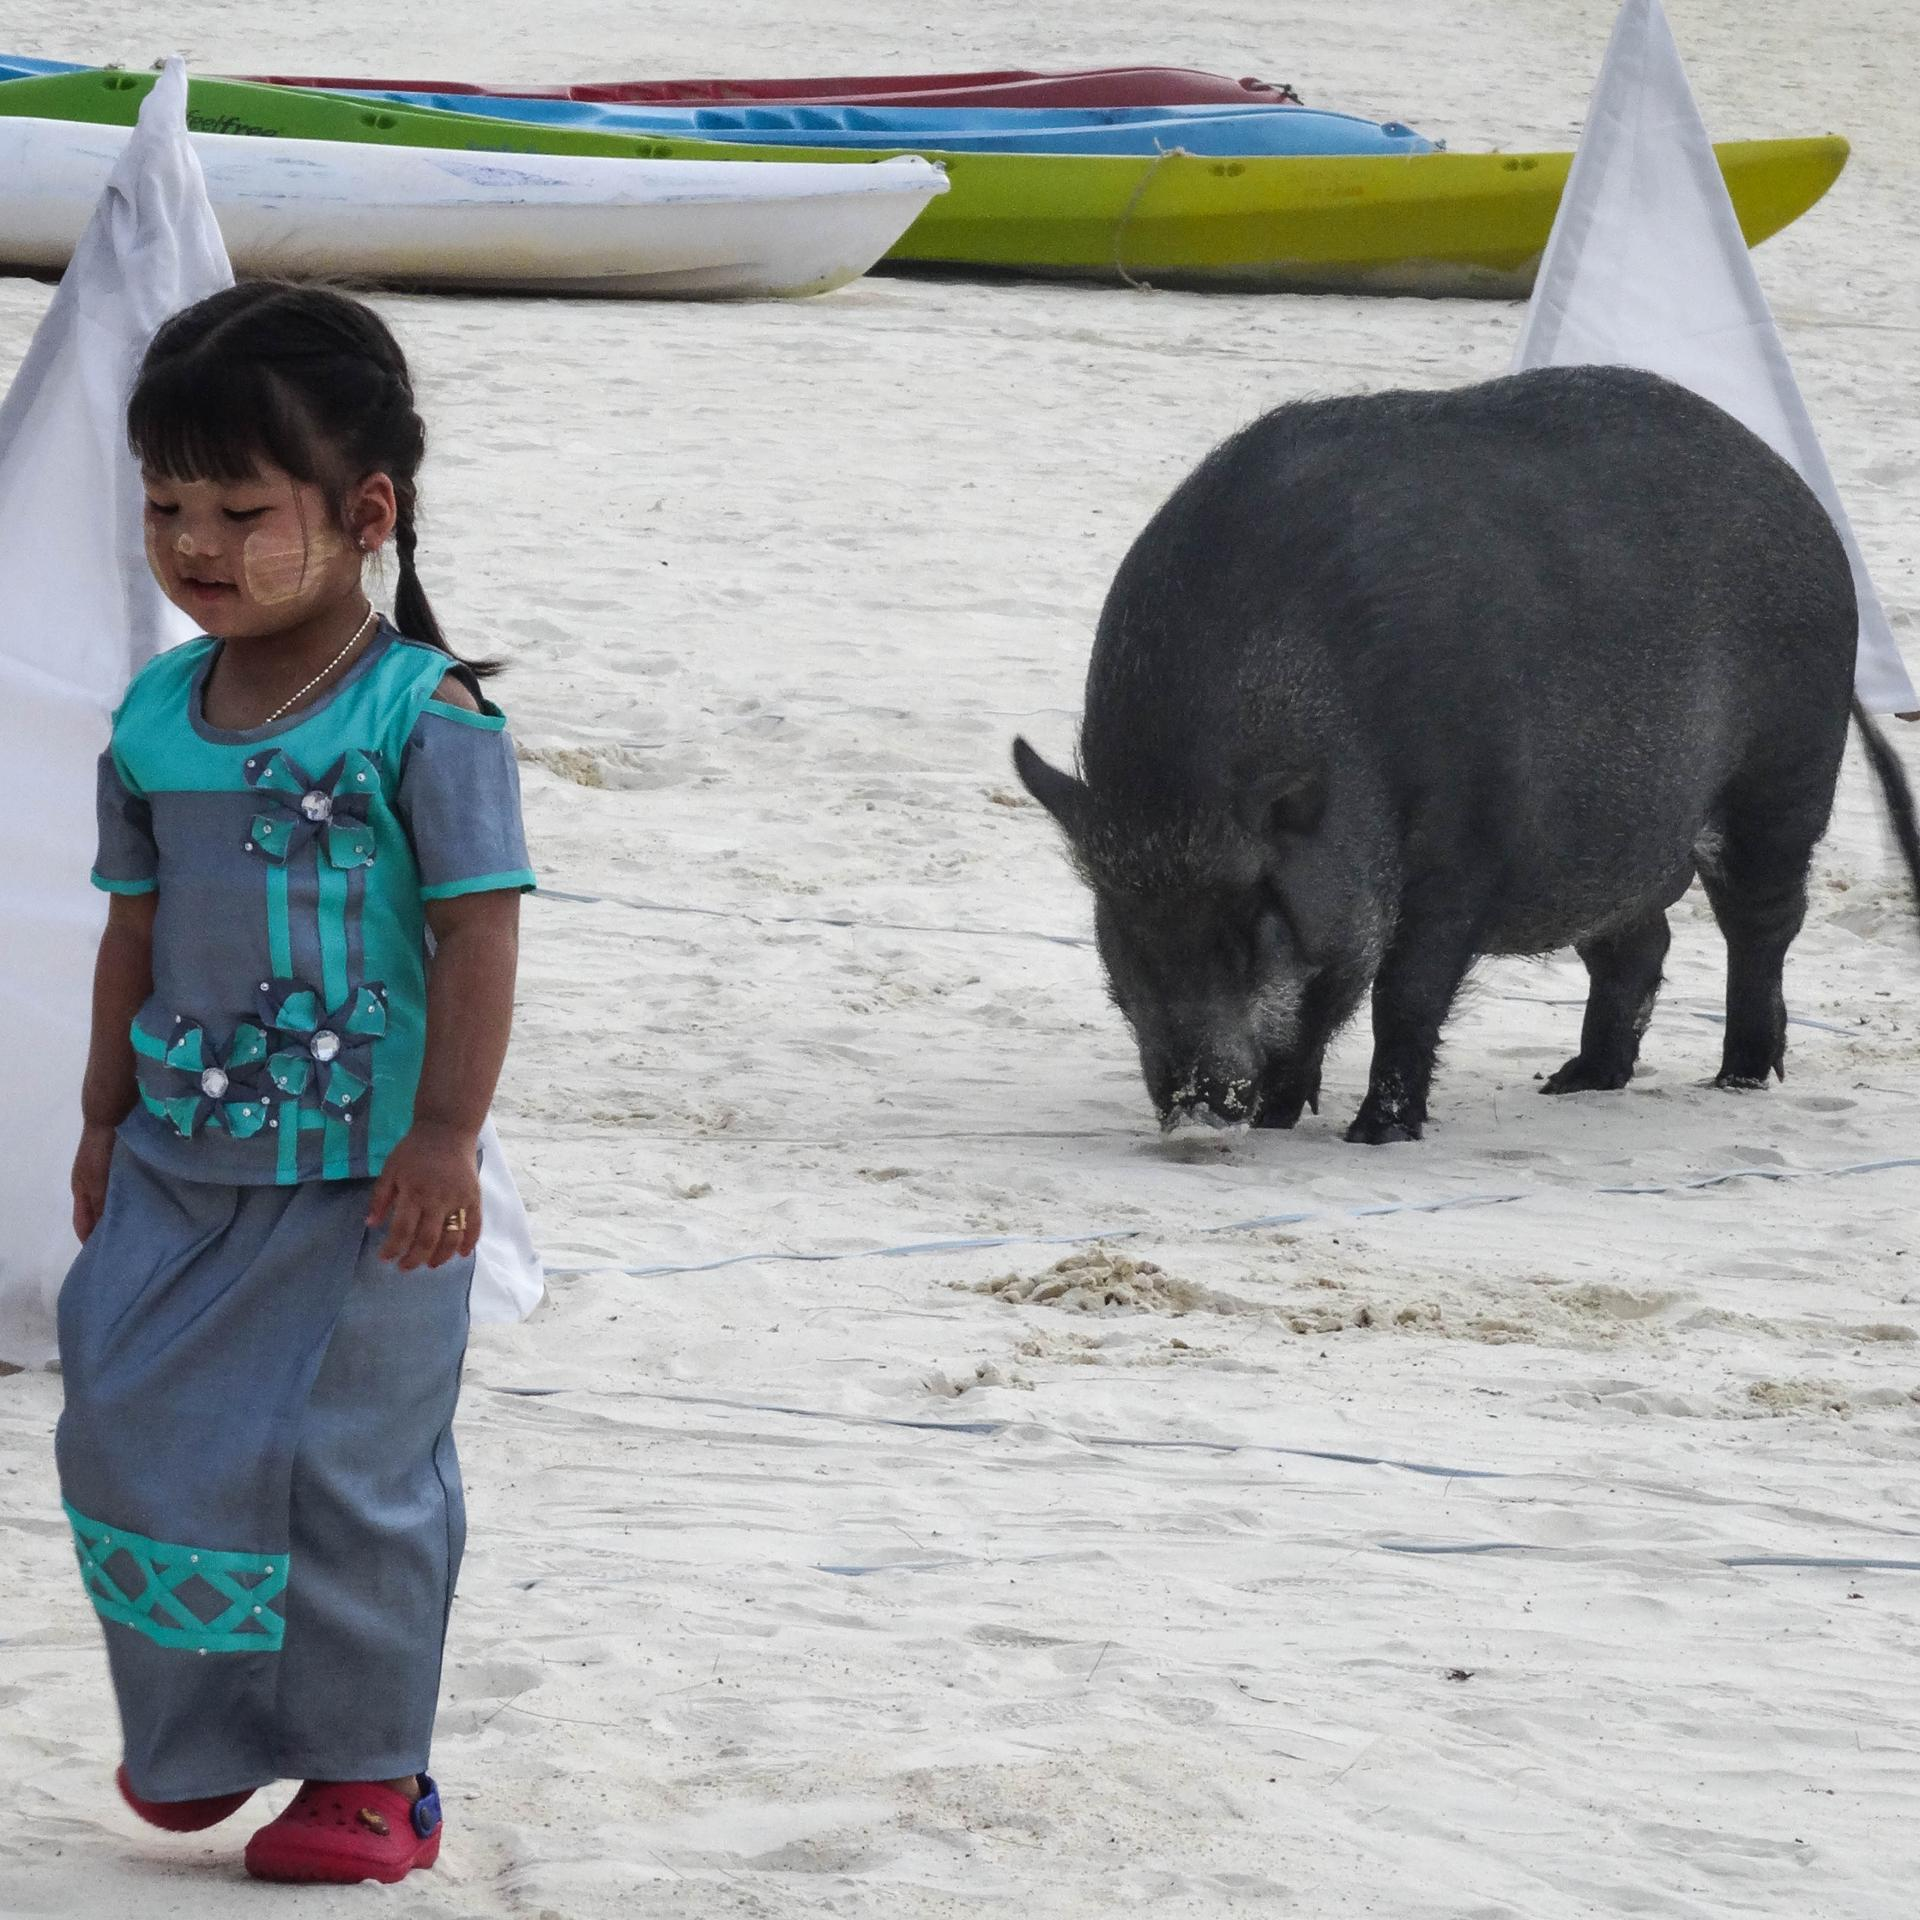 The little girl and the pig